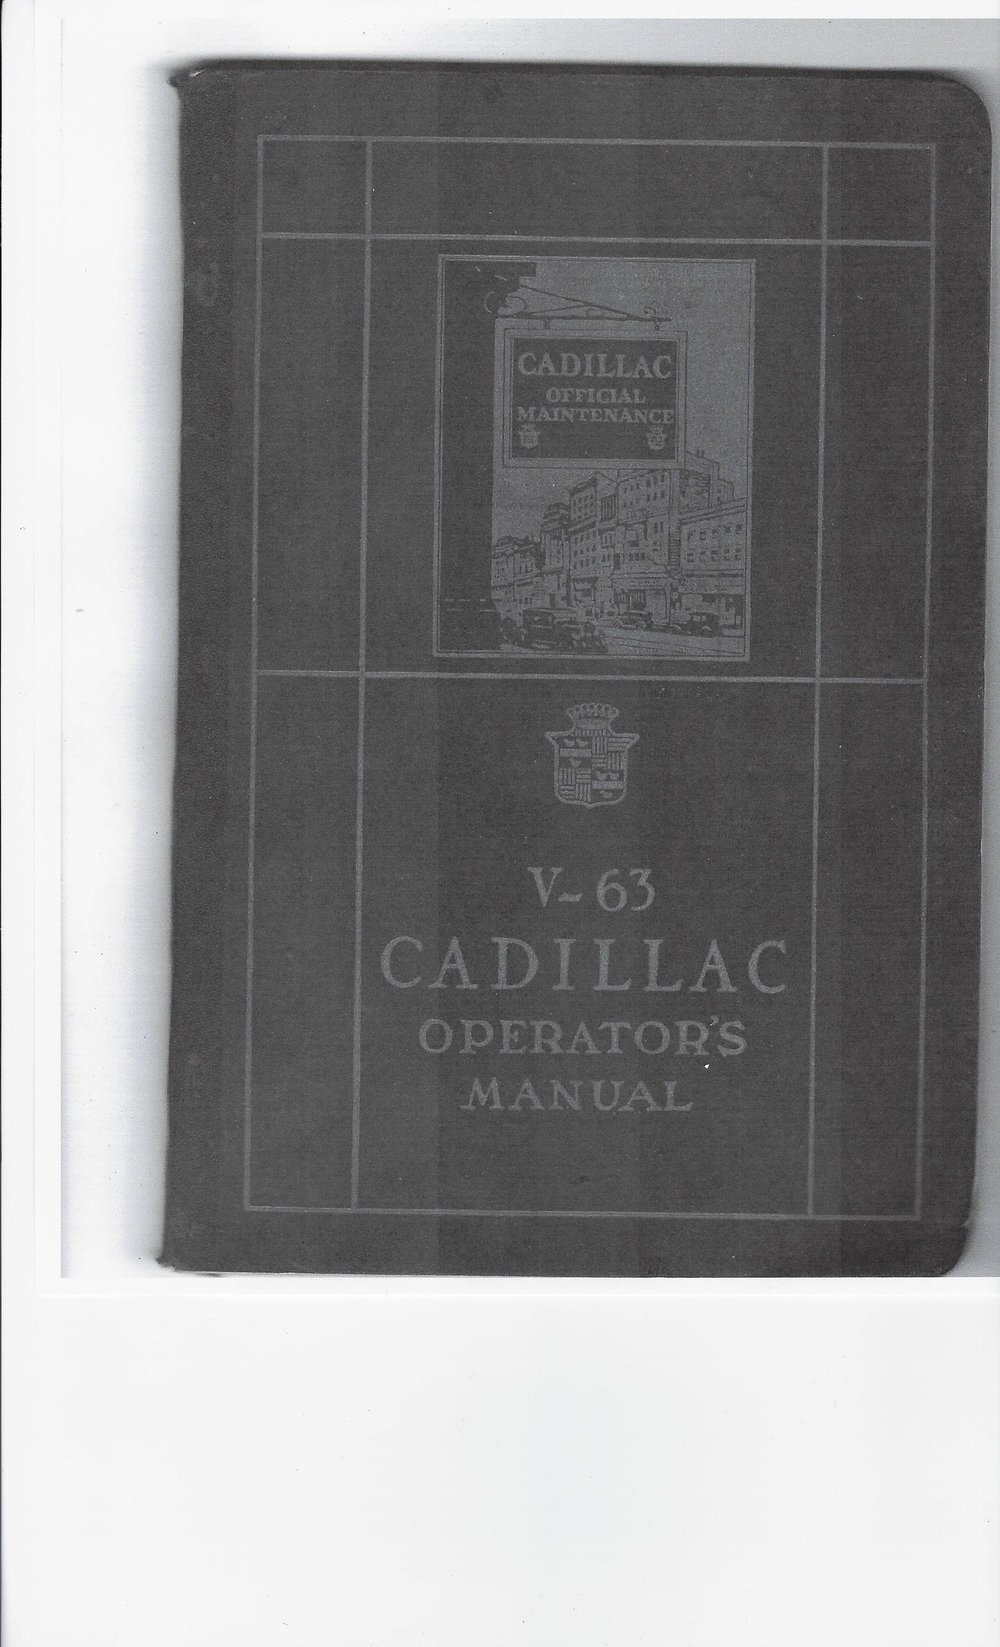 V63 Cadillac Operators Manual.jpg